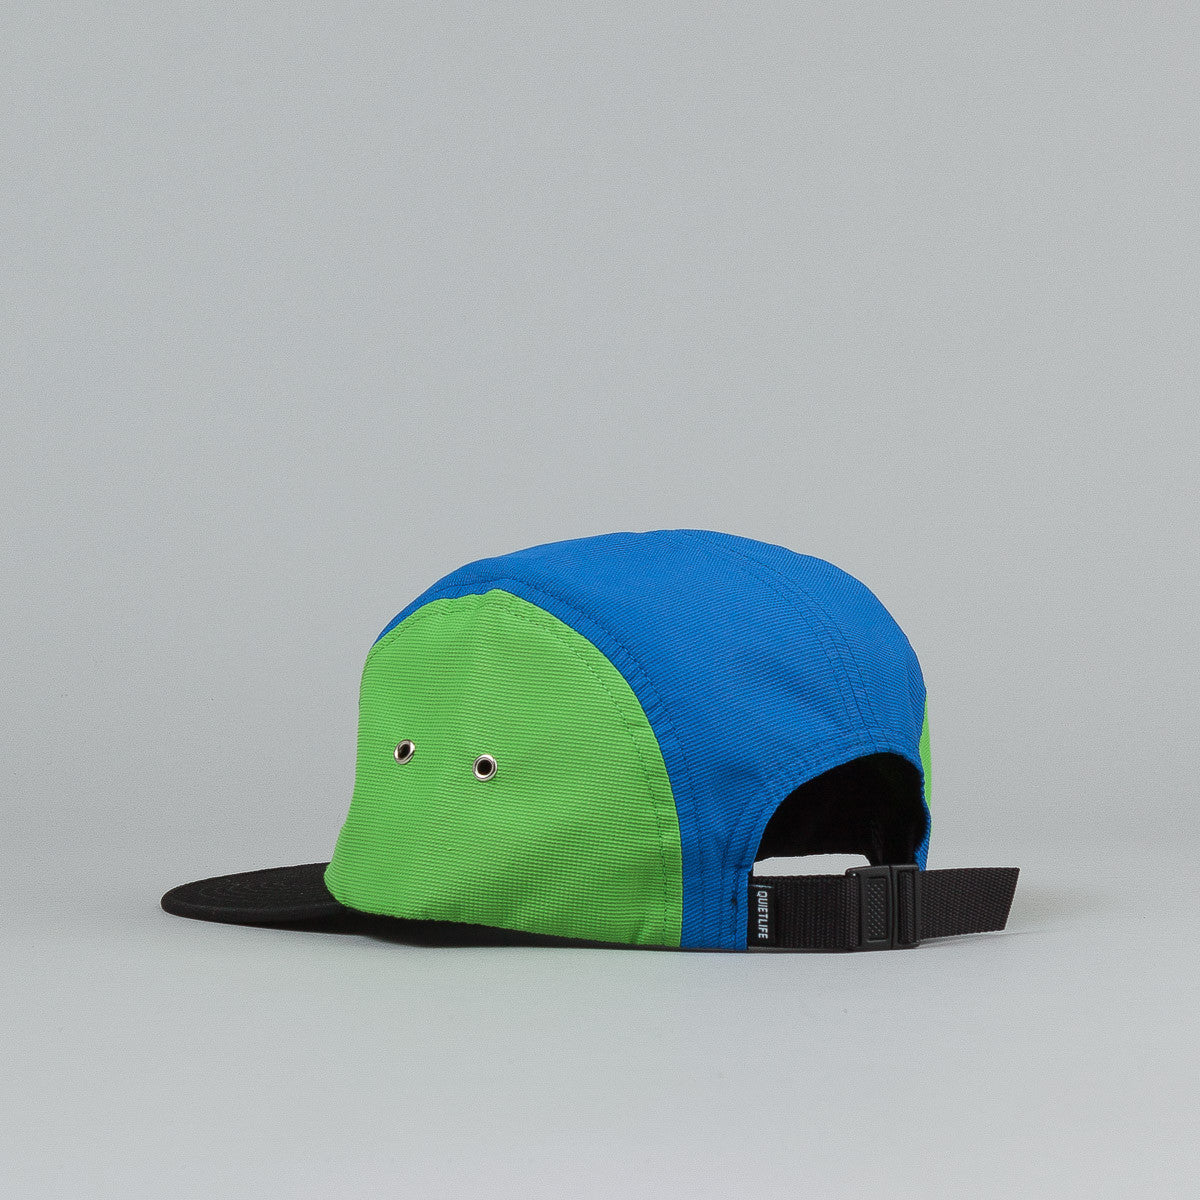 The Quiet Life Aruba 5 Panel Cap - Black Front / Green Sides